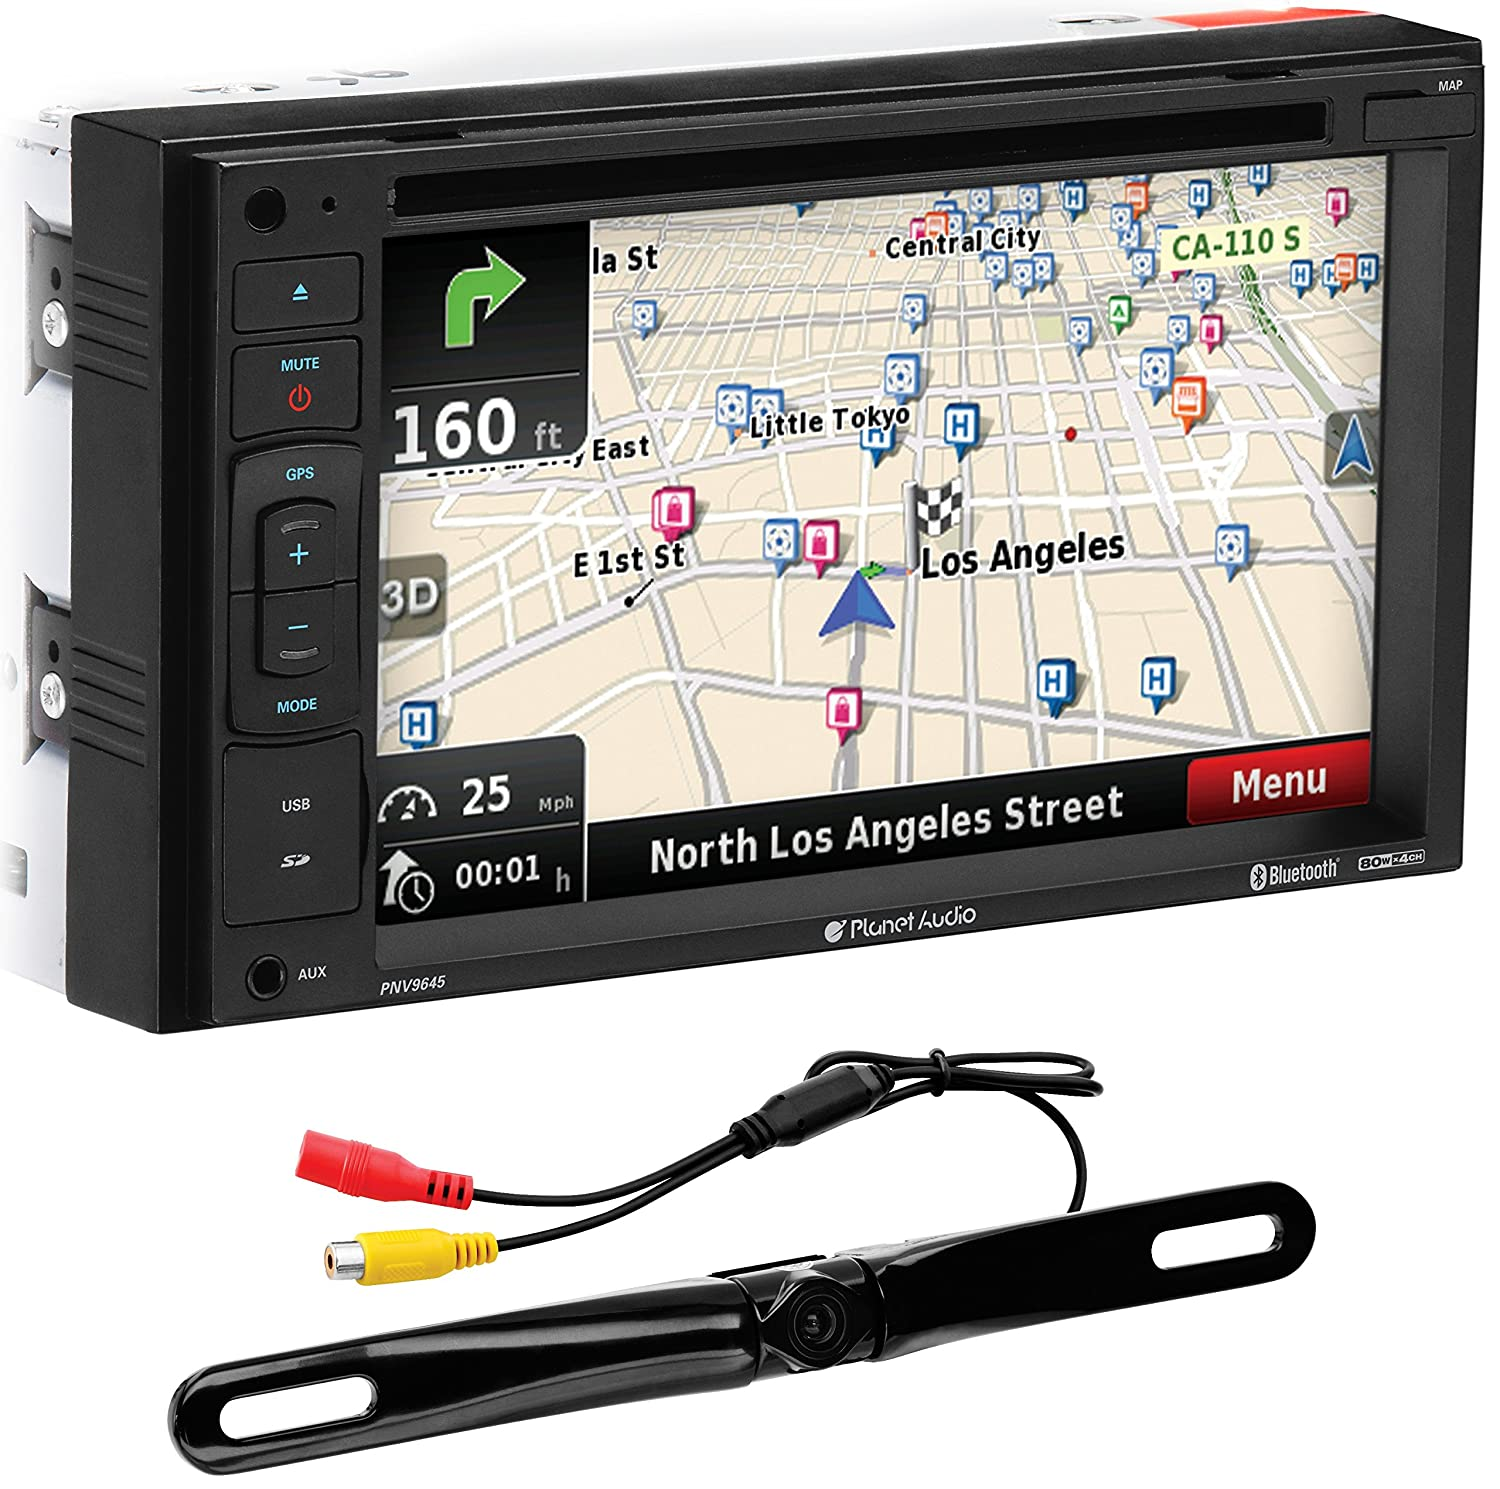 Boss Bv9755 Stereo Wiring Diagram Auto Electrical Planet Audio Amazon Com Pnv9645 Bluetooth Double Din Dvd Mp3 Usb Sd Rh Car Amp Pioneer